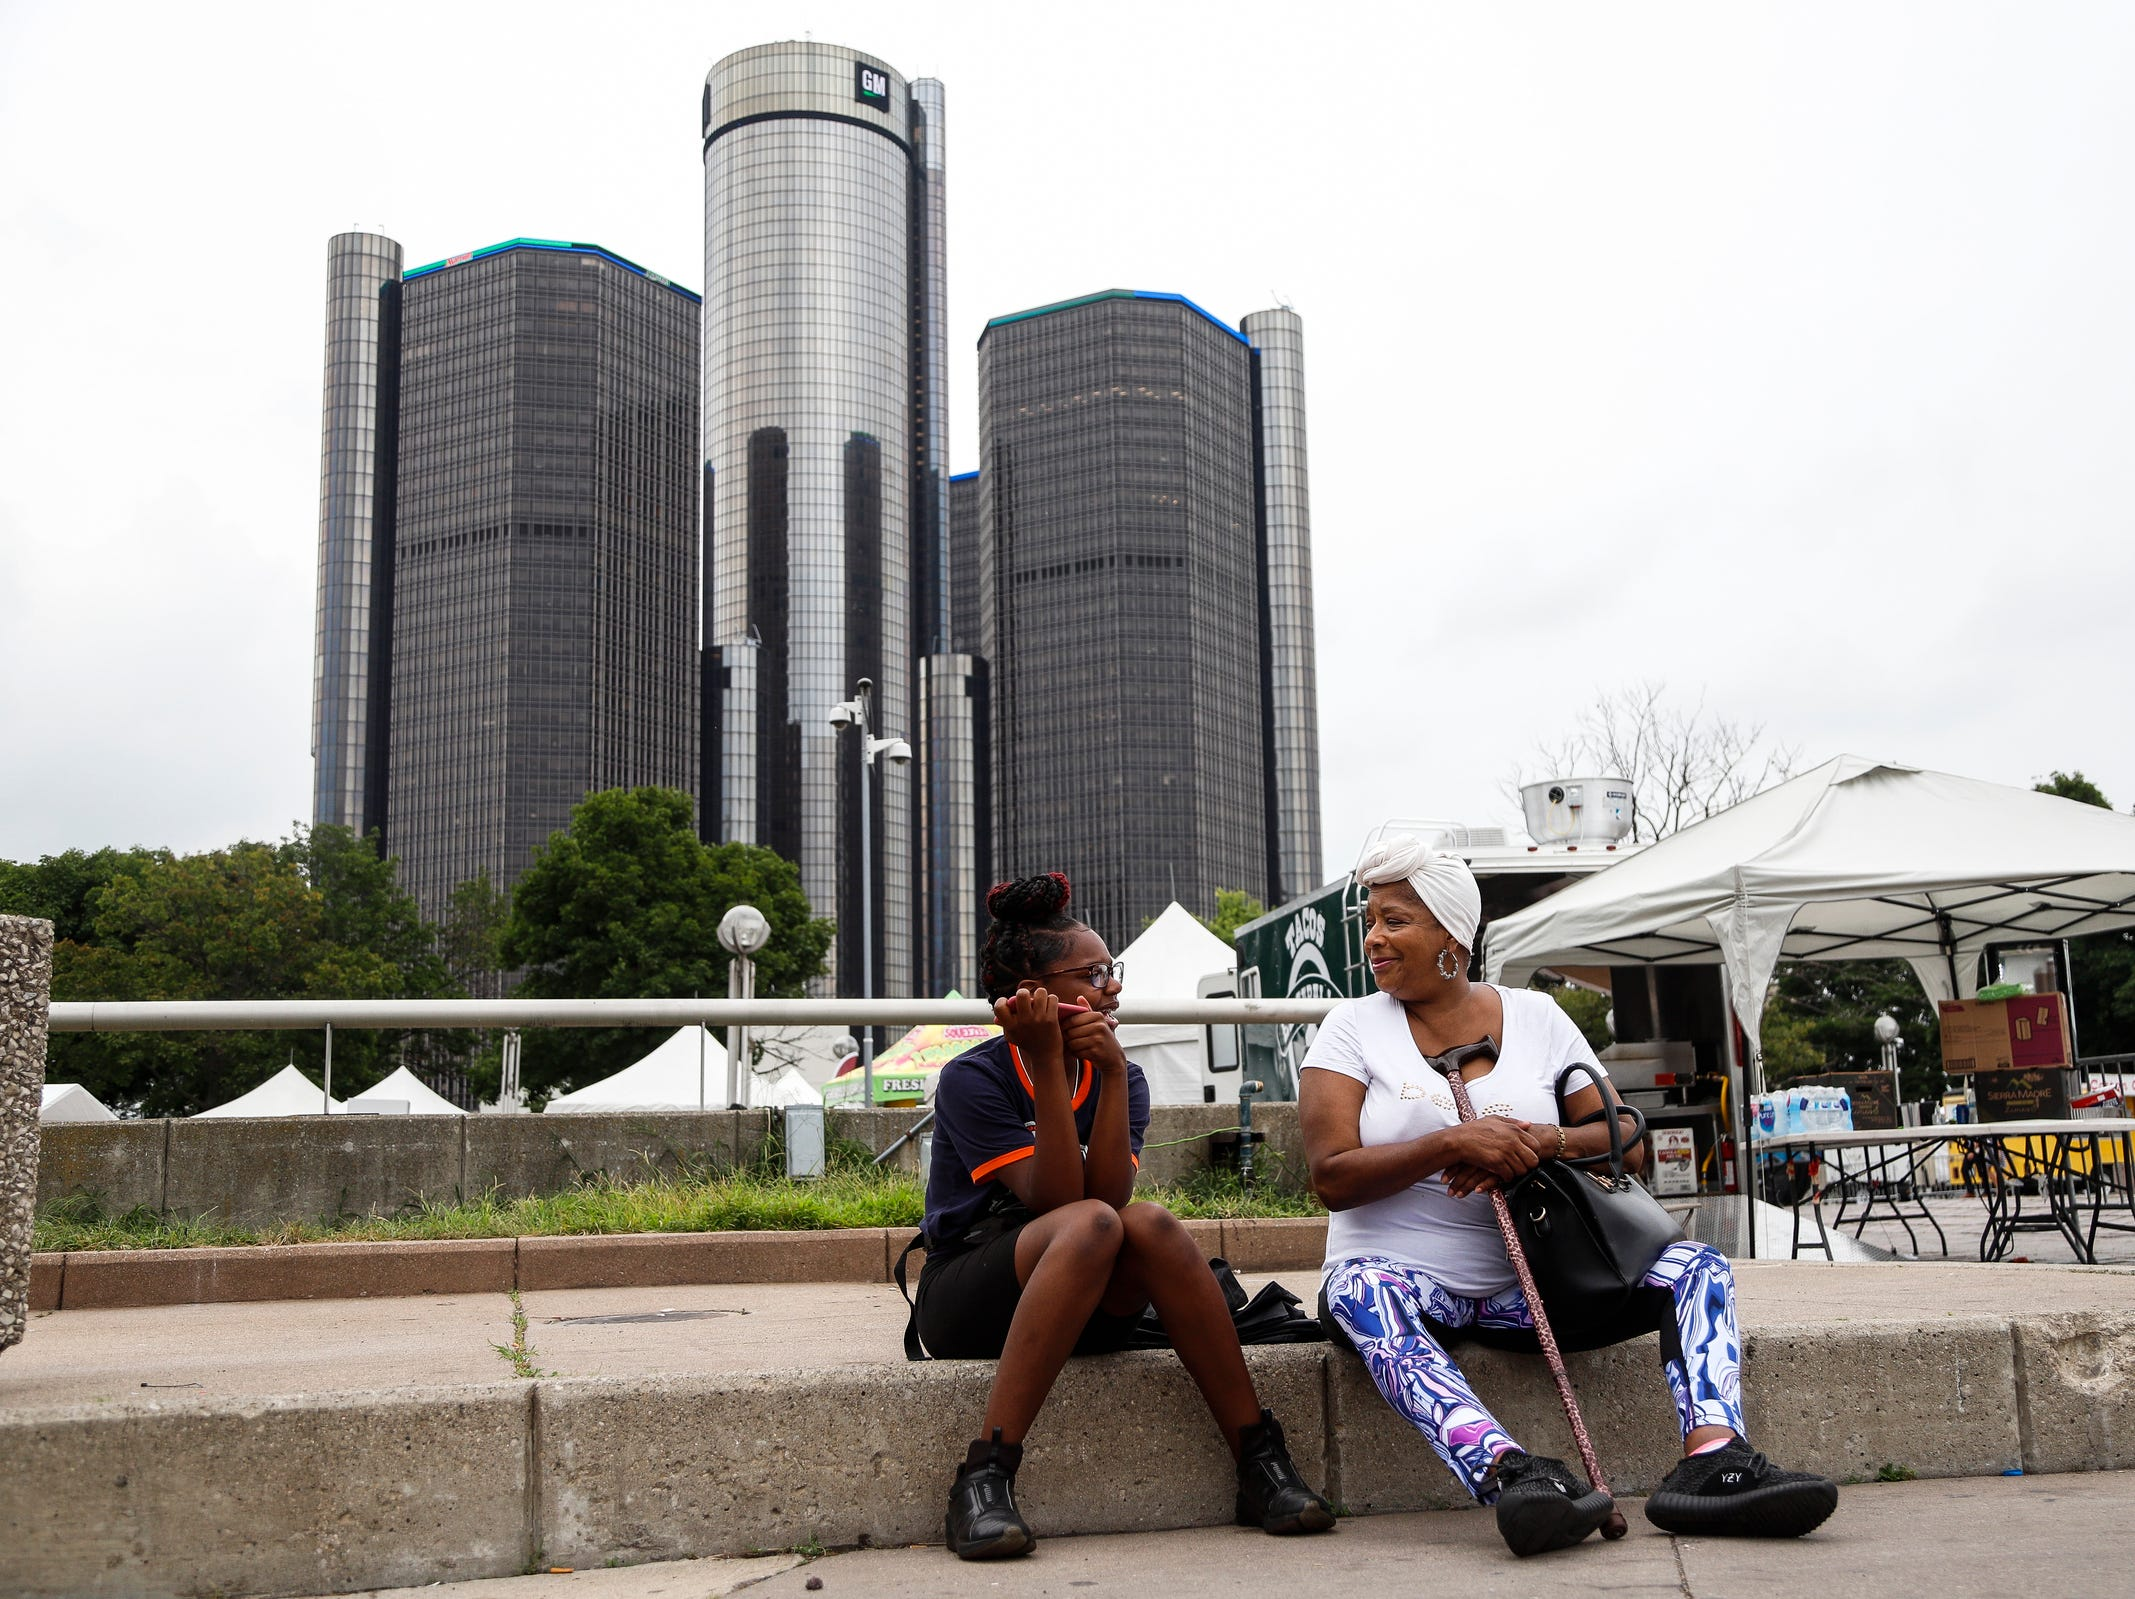 Sydney Simmons, 14, talks to his grandmother Beverly Render, both of Eastpointe, as they listen to the band Seatbelts perform at Hart Plaza during the Motor City Muscle, a free festival celebrating rock and muscle cars, in downtown Detroit on Friday, August 17, 2018.